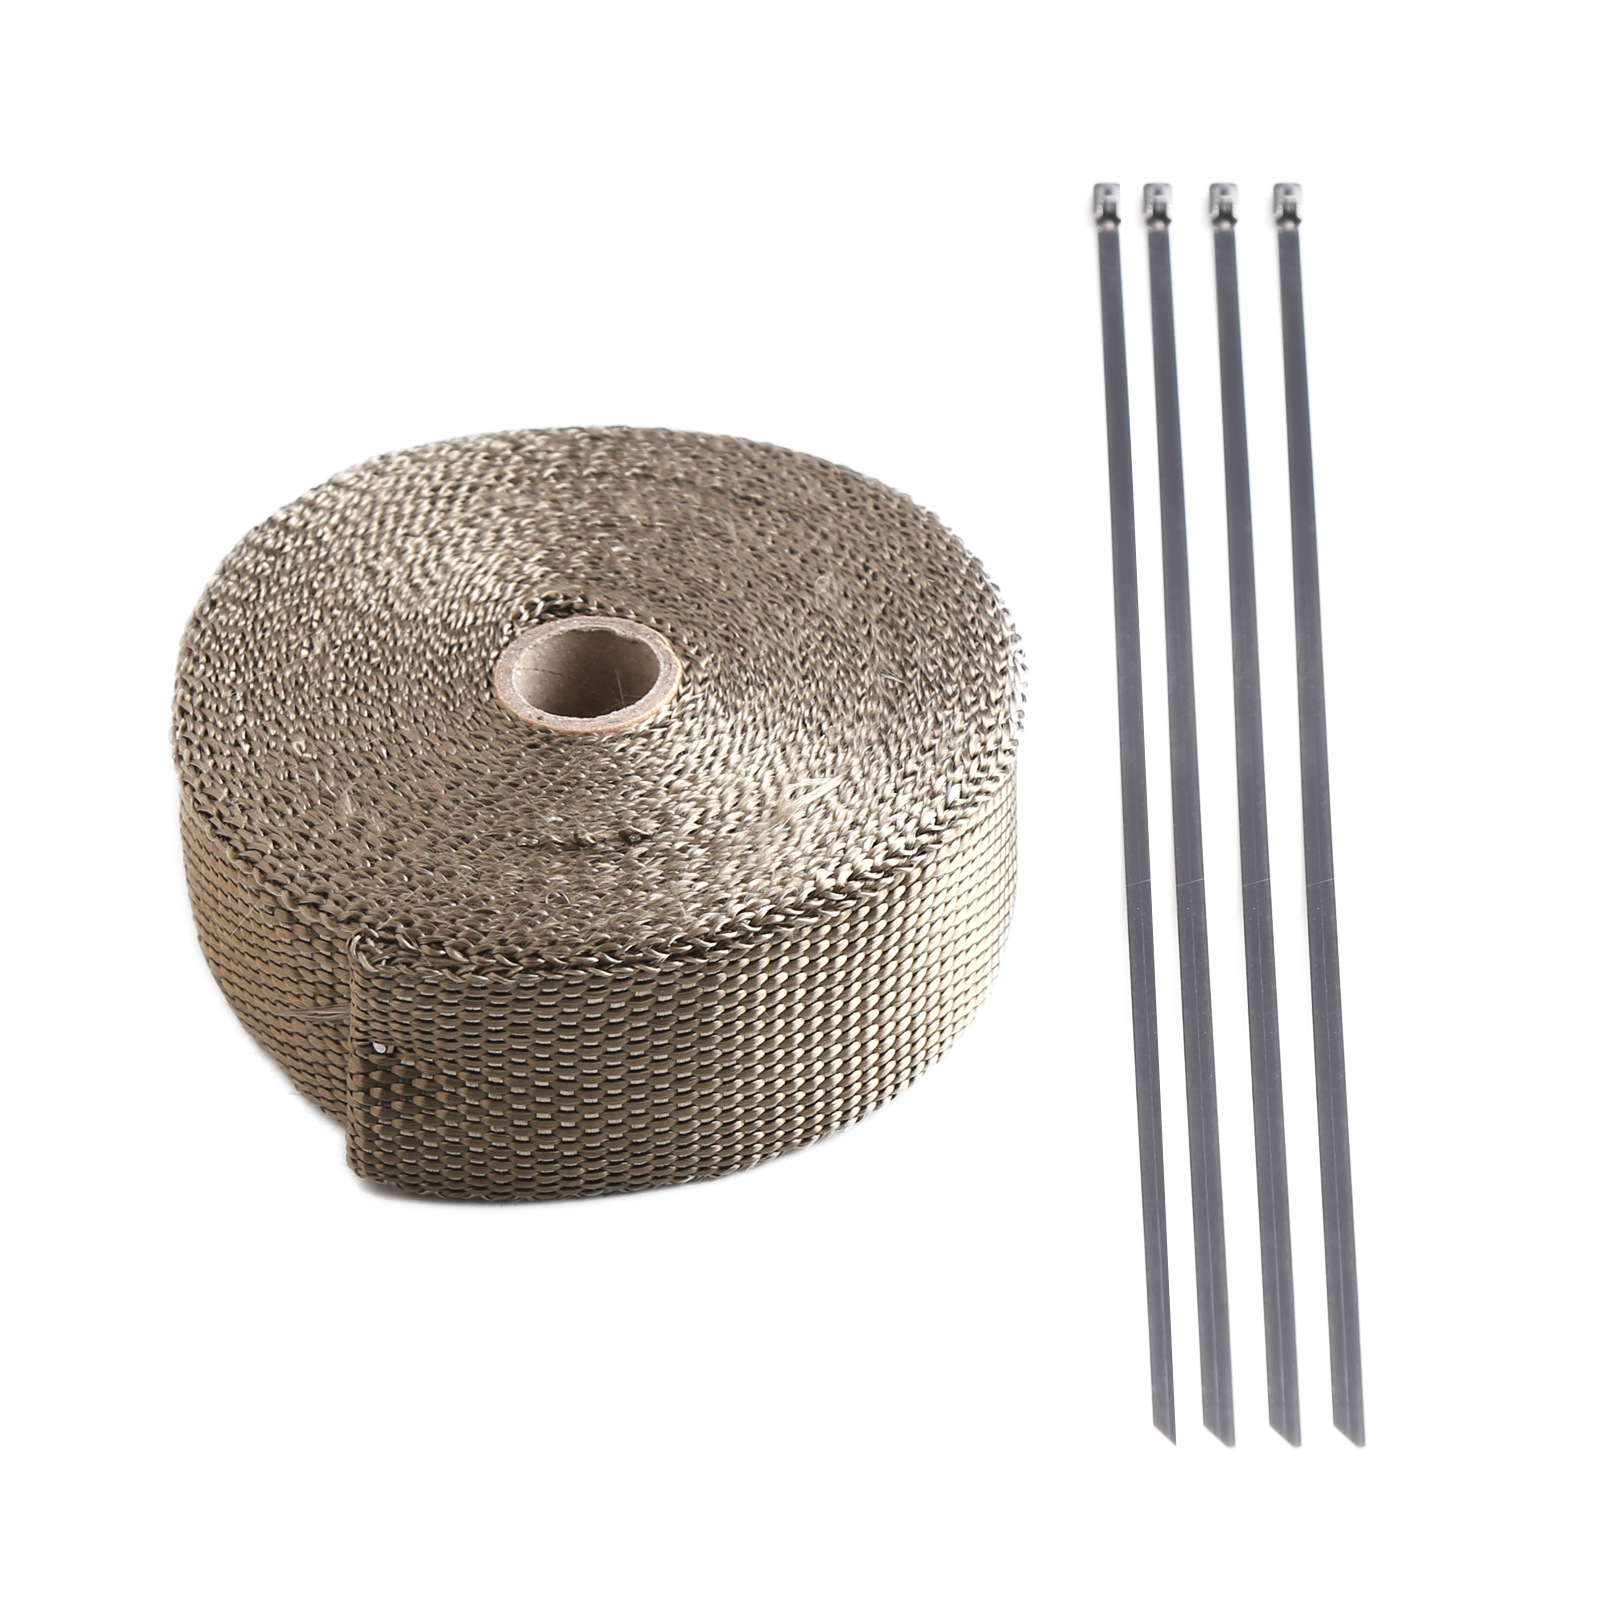 Car Motorcycle Exhaust Pipe Insulation Cloth High-temperature Resistant Musa Basjoo Arming Hot Belt Fire Prevention Material Mus